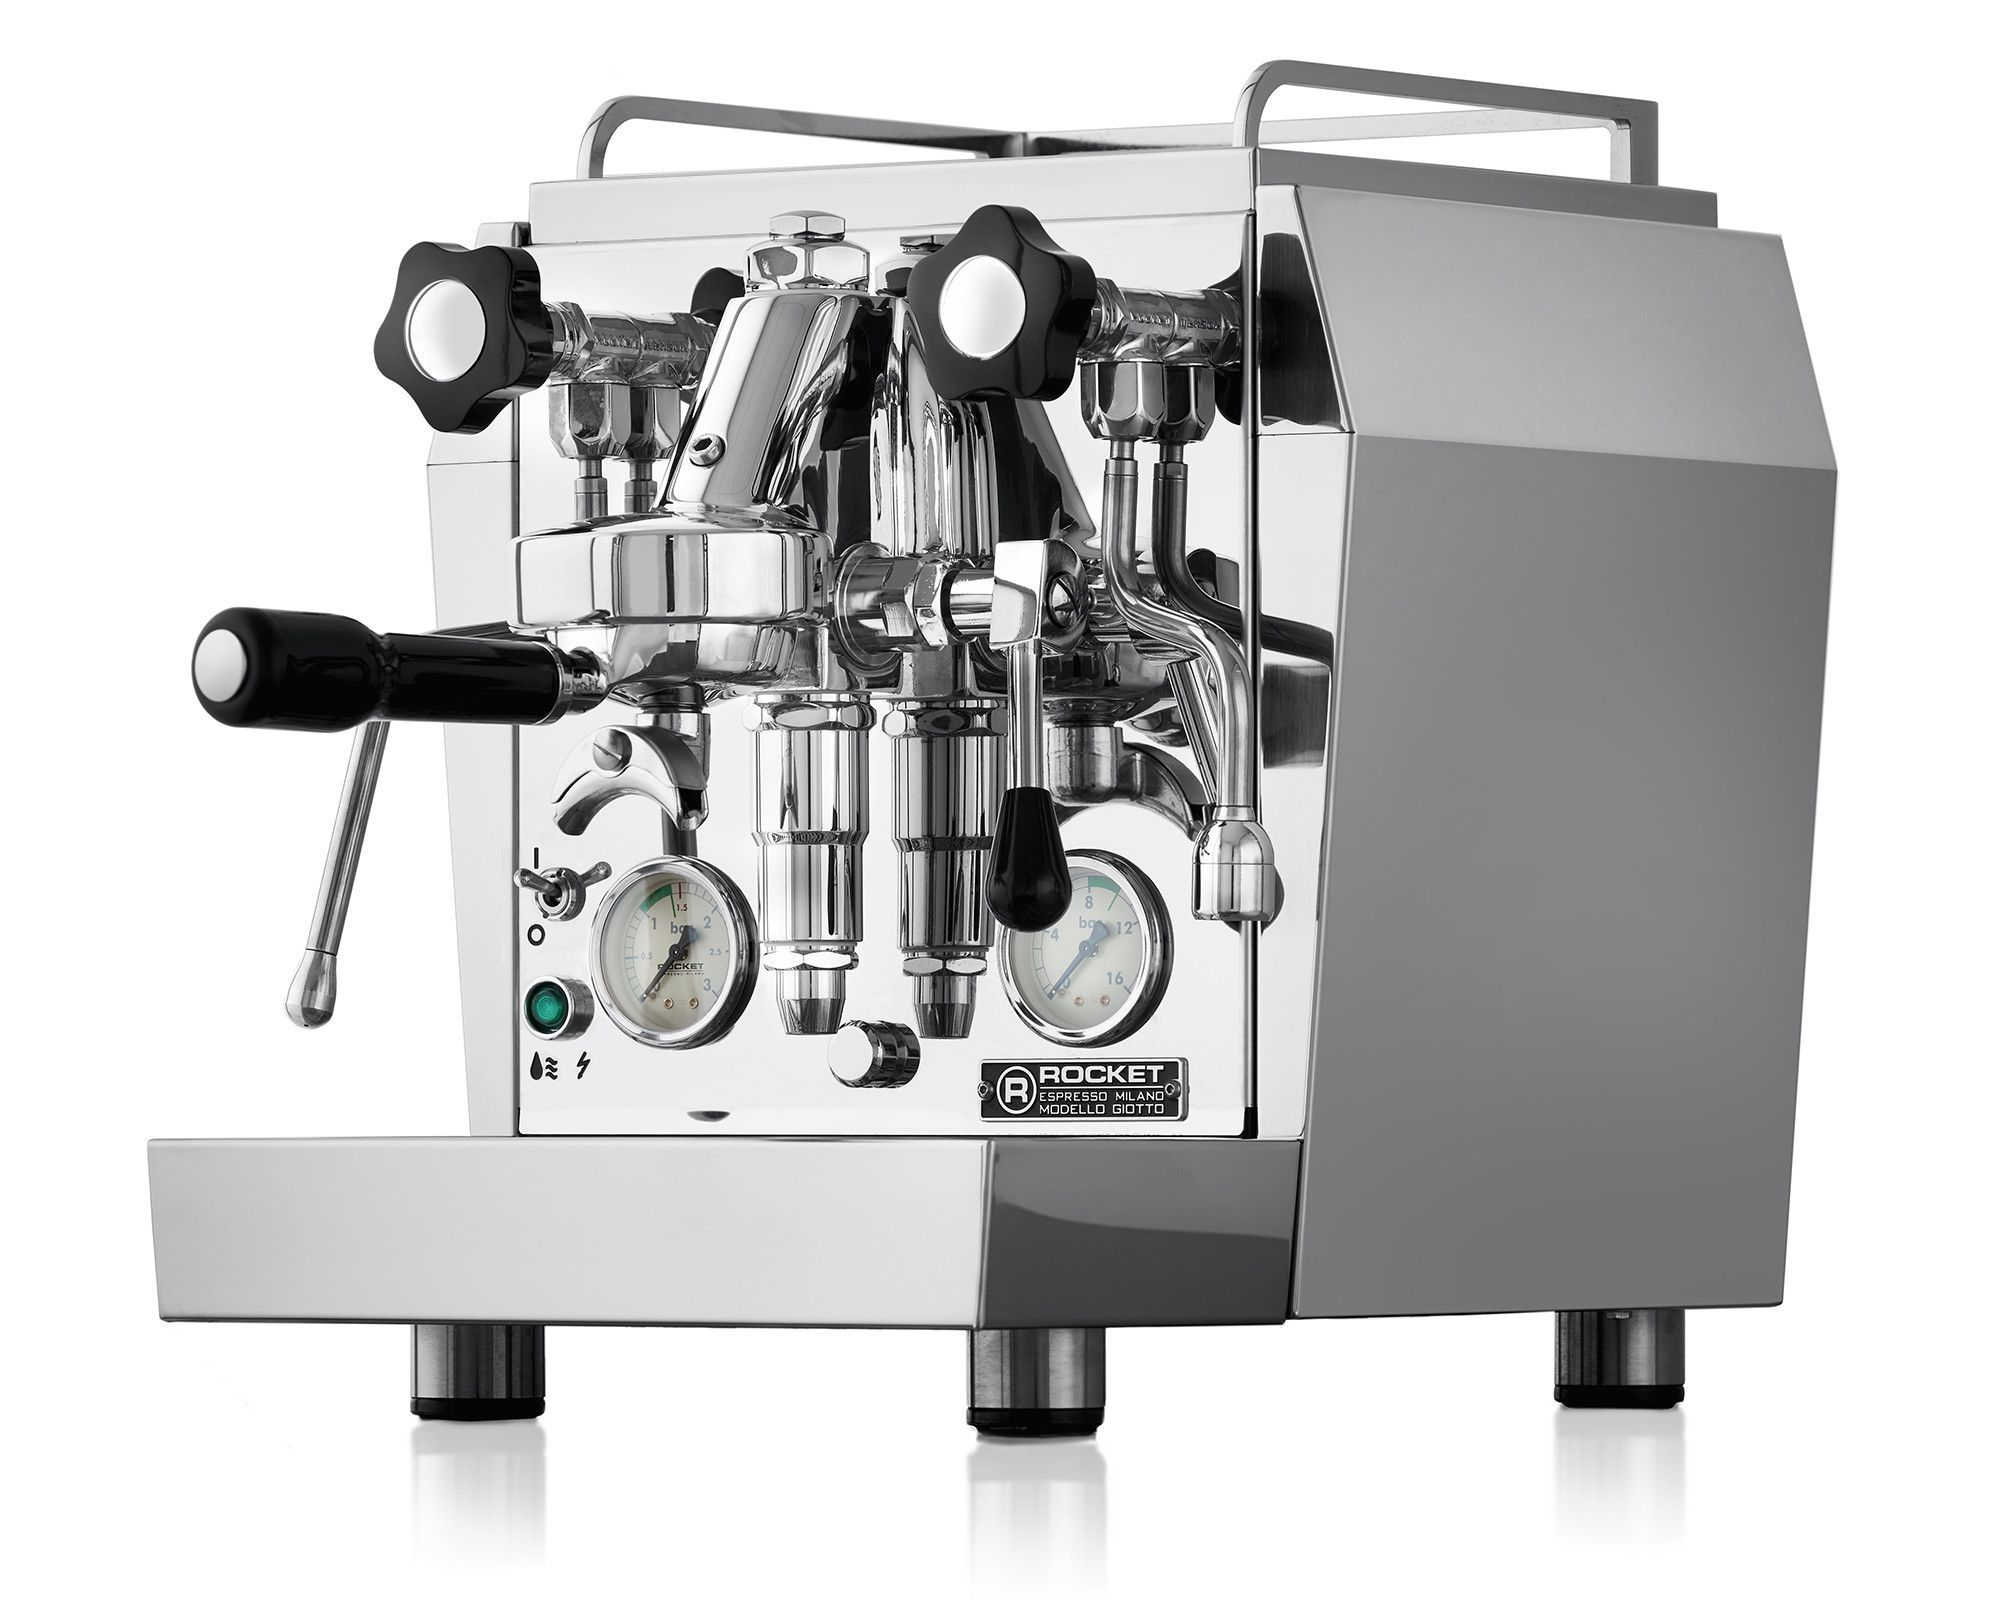 Perfect The Rocket Espresso Giotto Premium Plus Is Design, Beauty And Performace  All At Once. Come Learn About This Handmade Espresso Machine Now. Nice Ideas